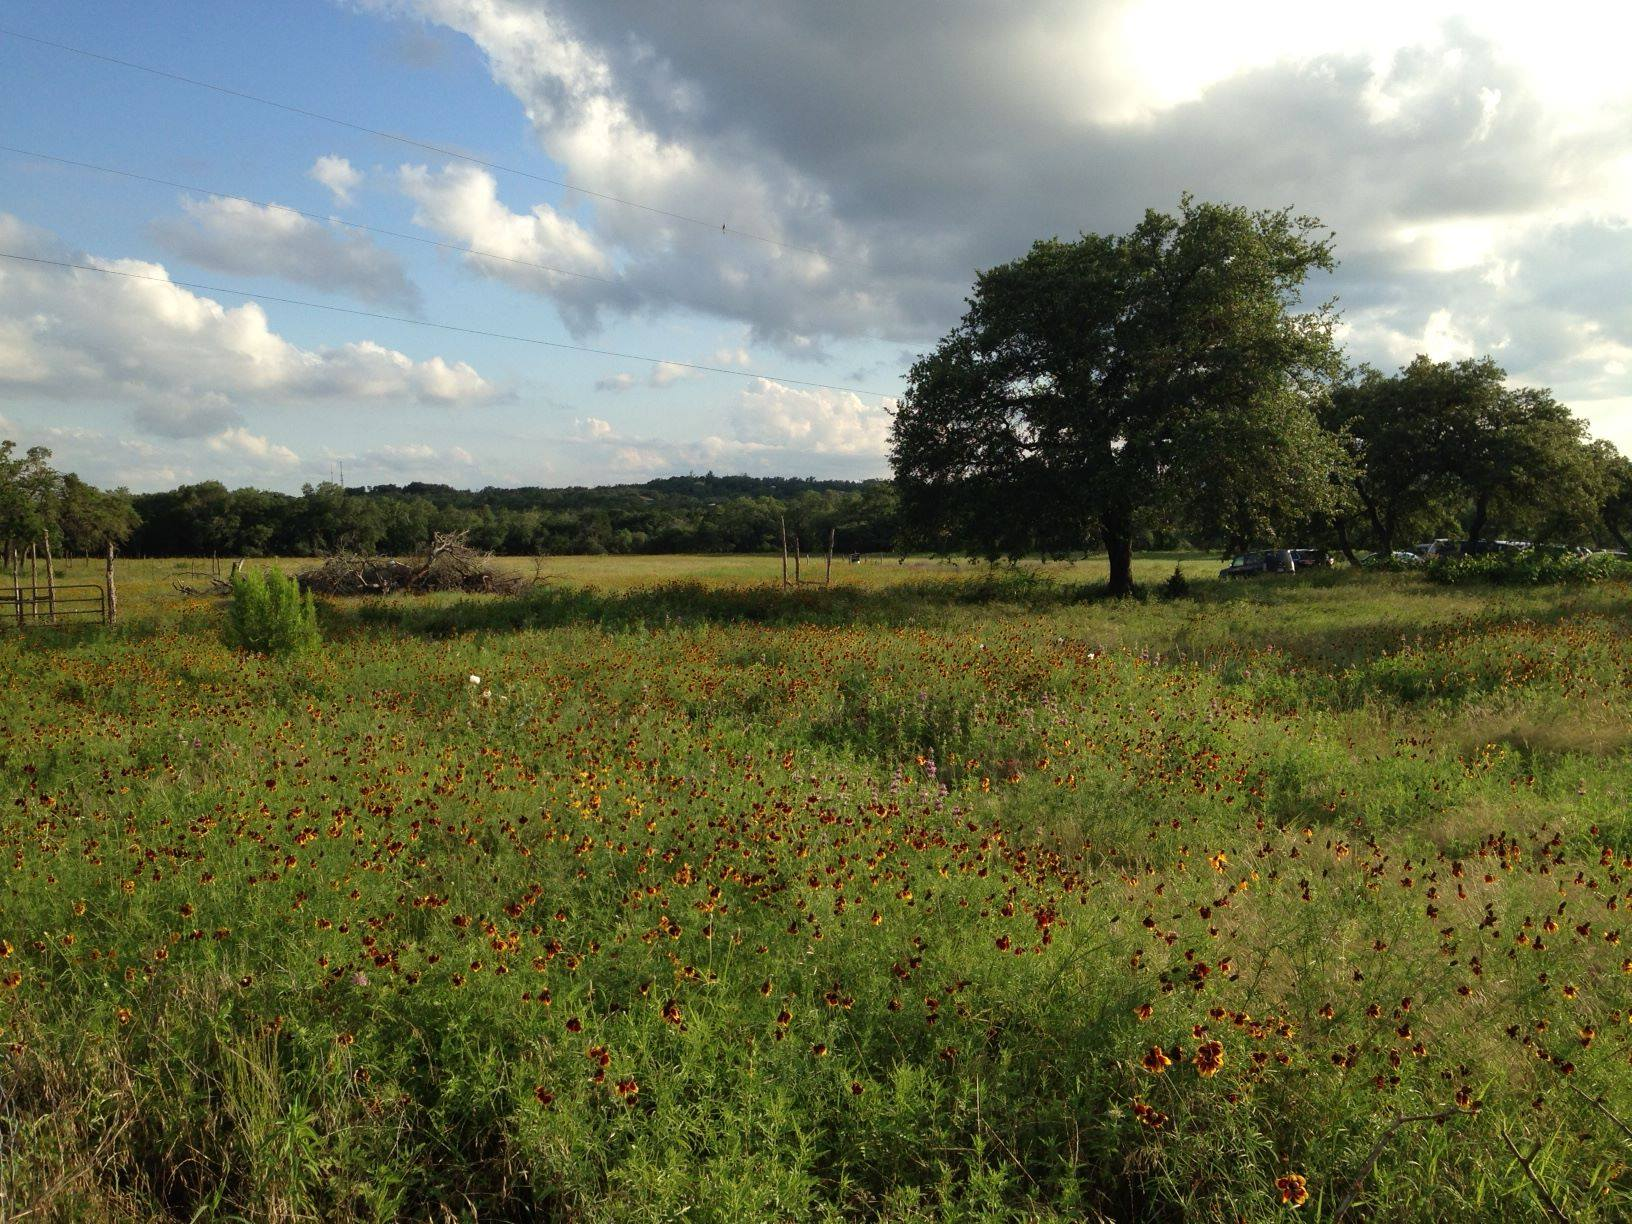 Jester King Buys 58 Acres To Protect Land From Developers